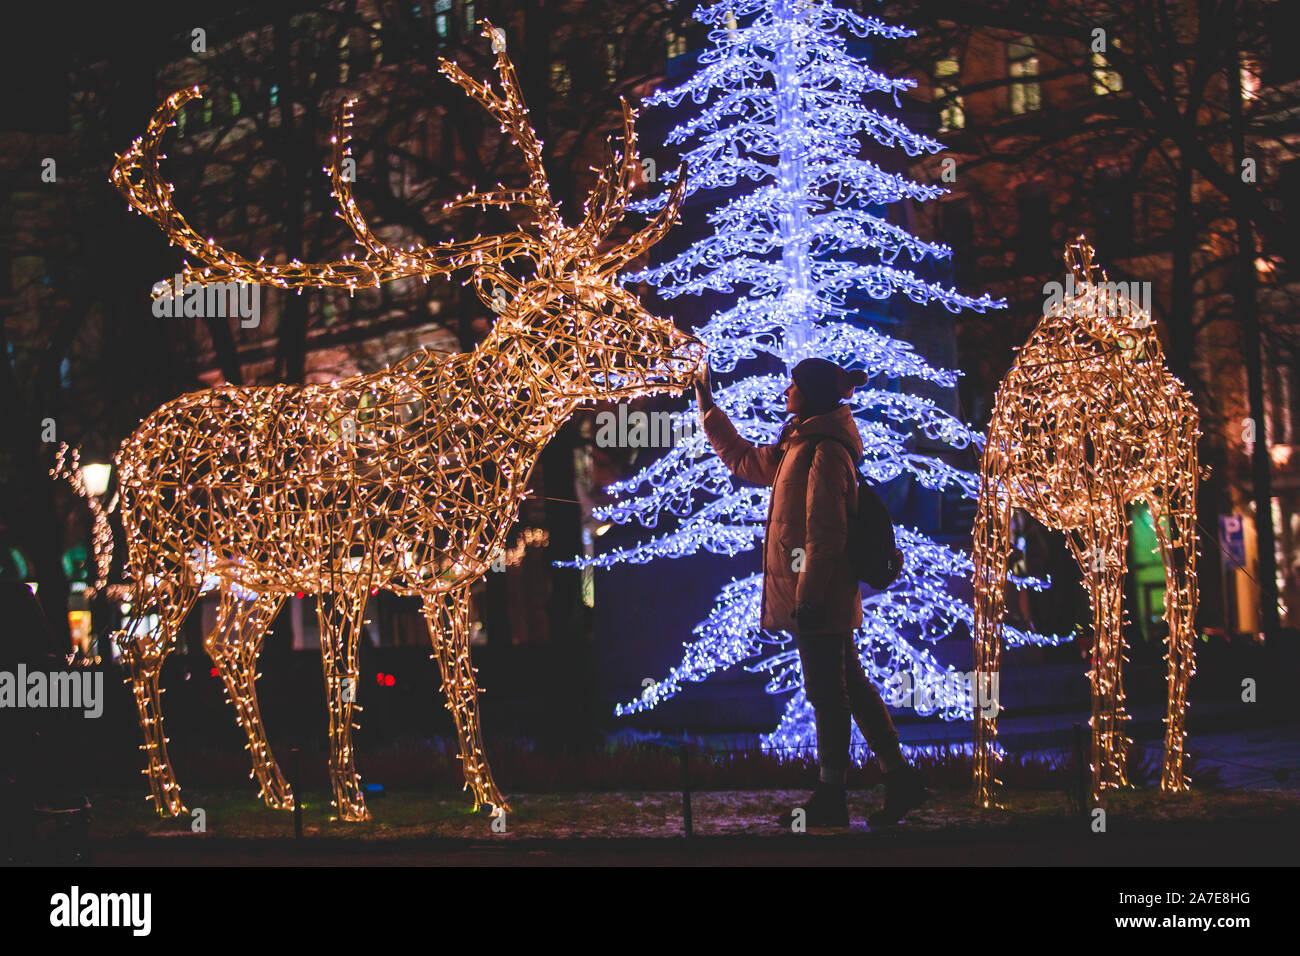 Christmas Decorations In The Historical Center Streets Of Helsinki With Evening Light Illumination Concept Of Christmas In Finland With Cathedral Stock Photo Alamy